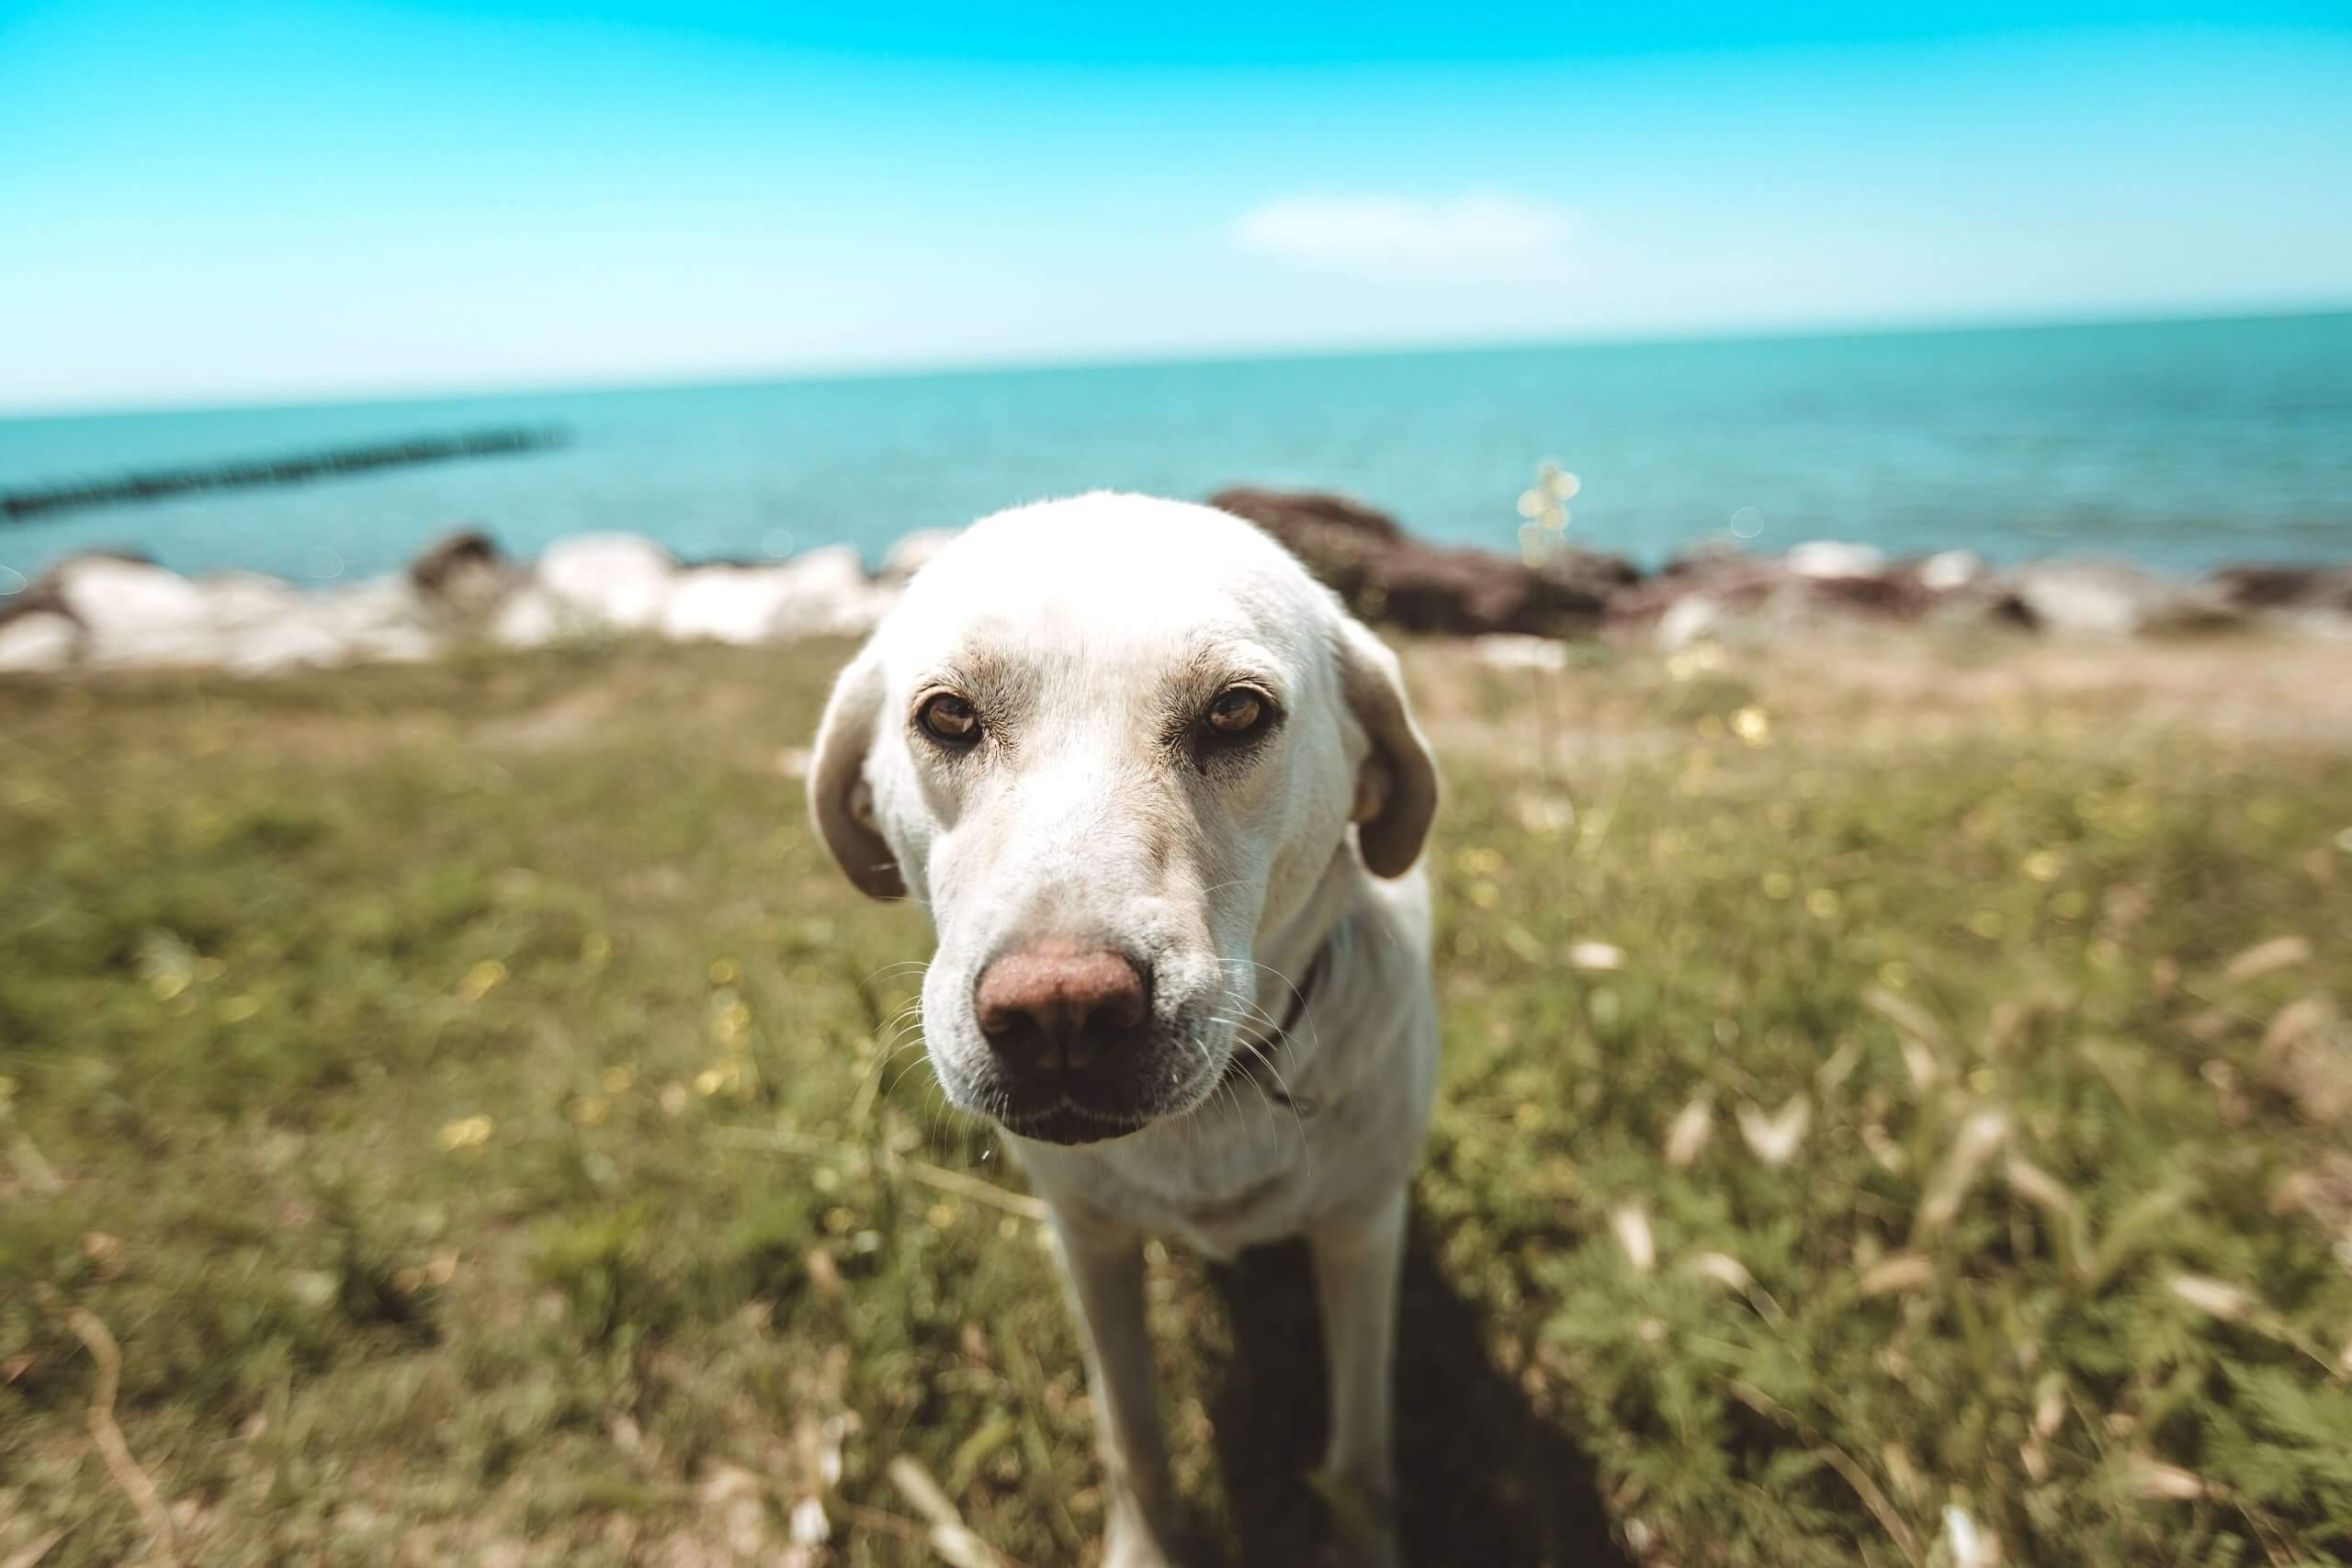 'Does my Dog Need a Passport?': 9 Taking Pets Abroad FAQs